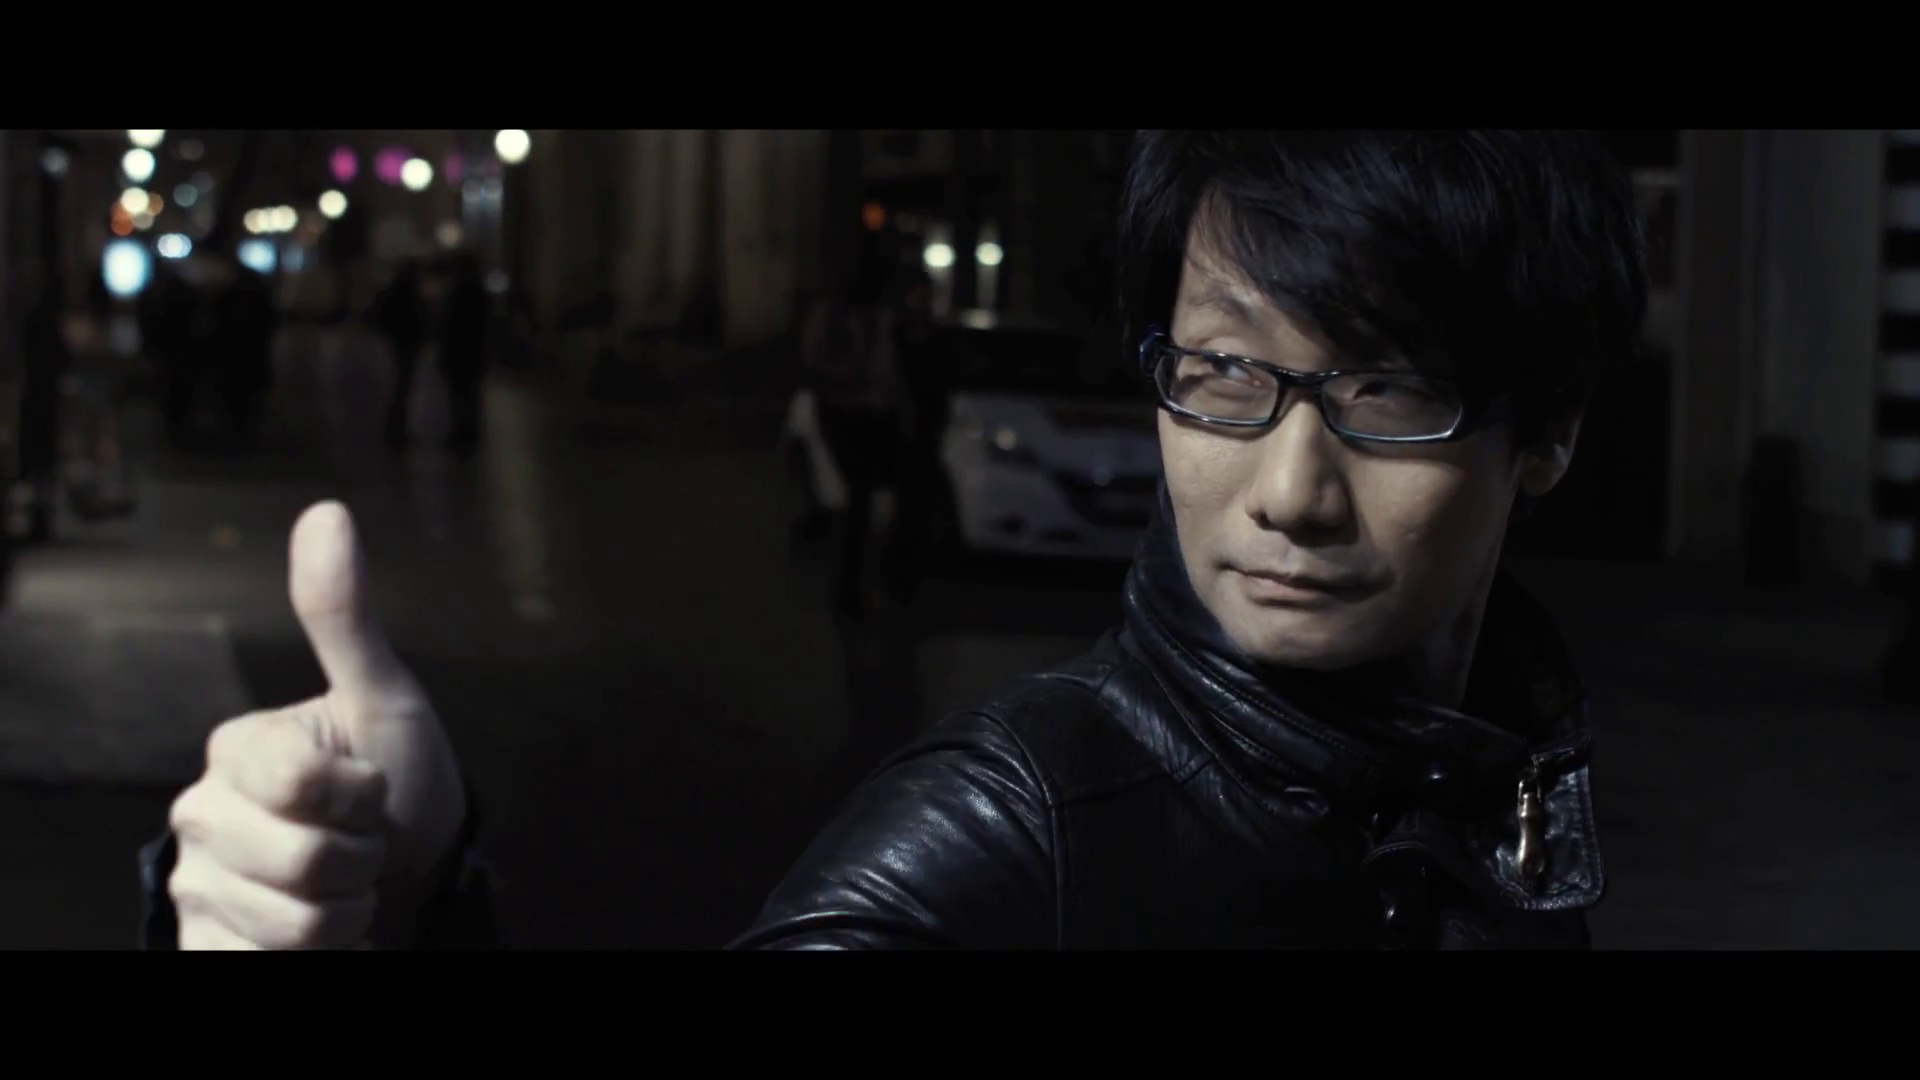 Hideo Kojima - cool guy